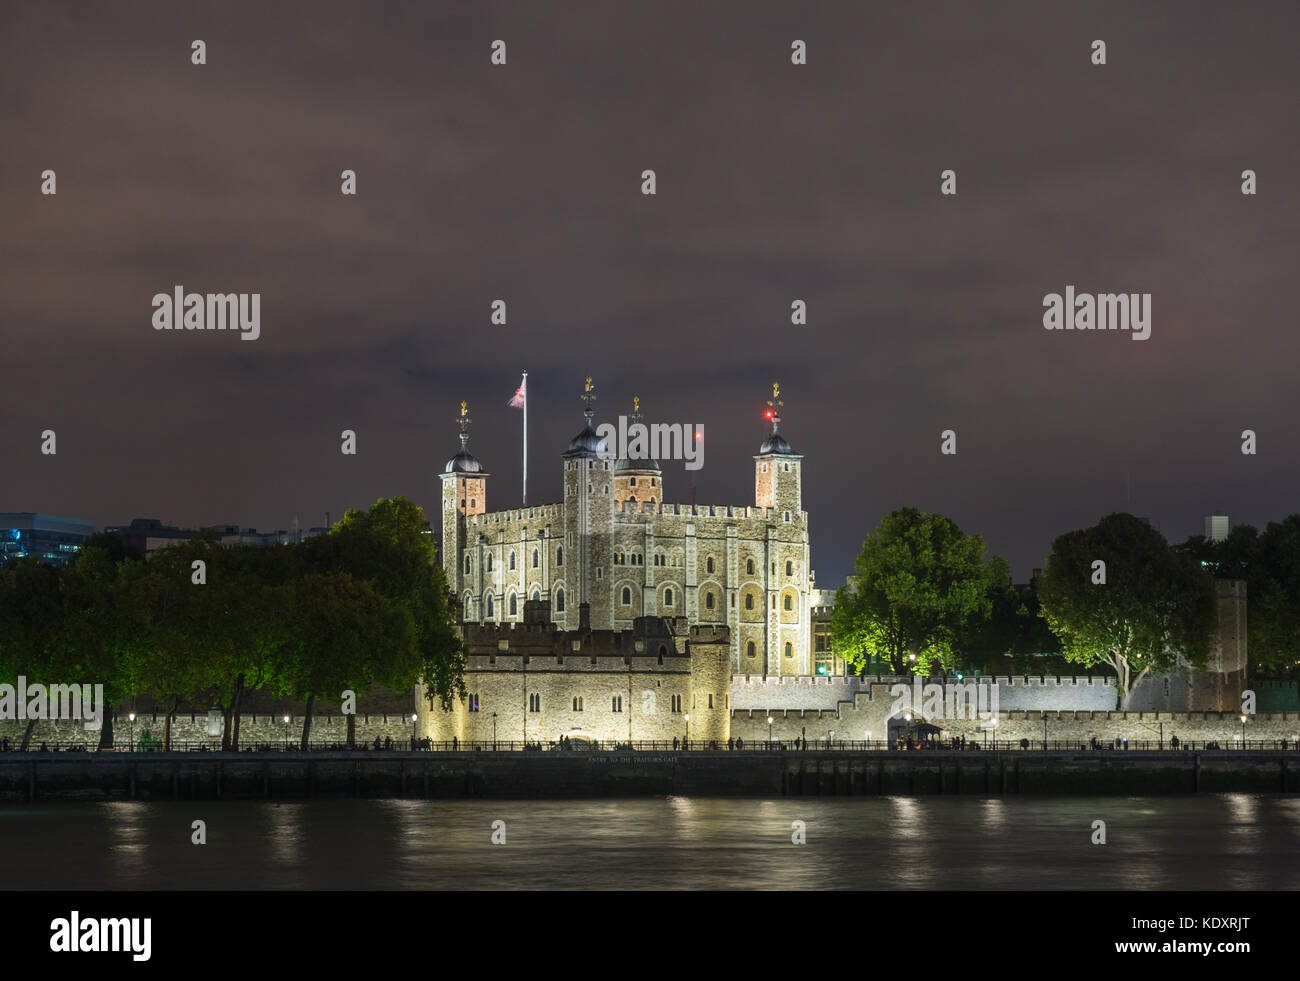 The illuminated Tower of London - a historic landmark building at night, City of London, England, UK - Stock Image